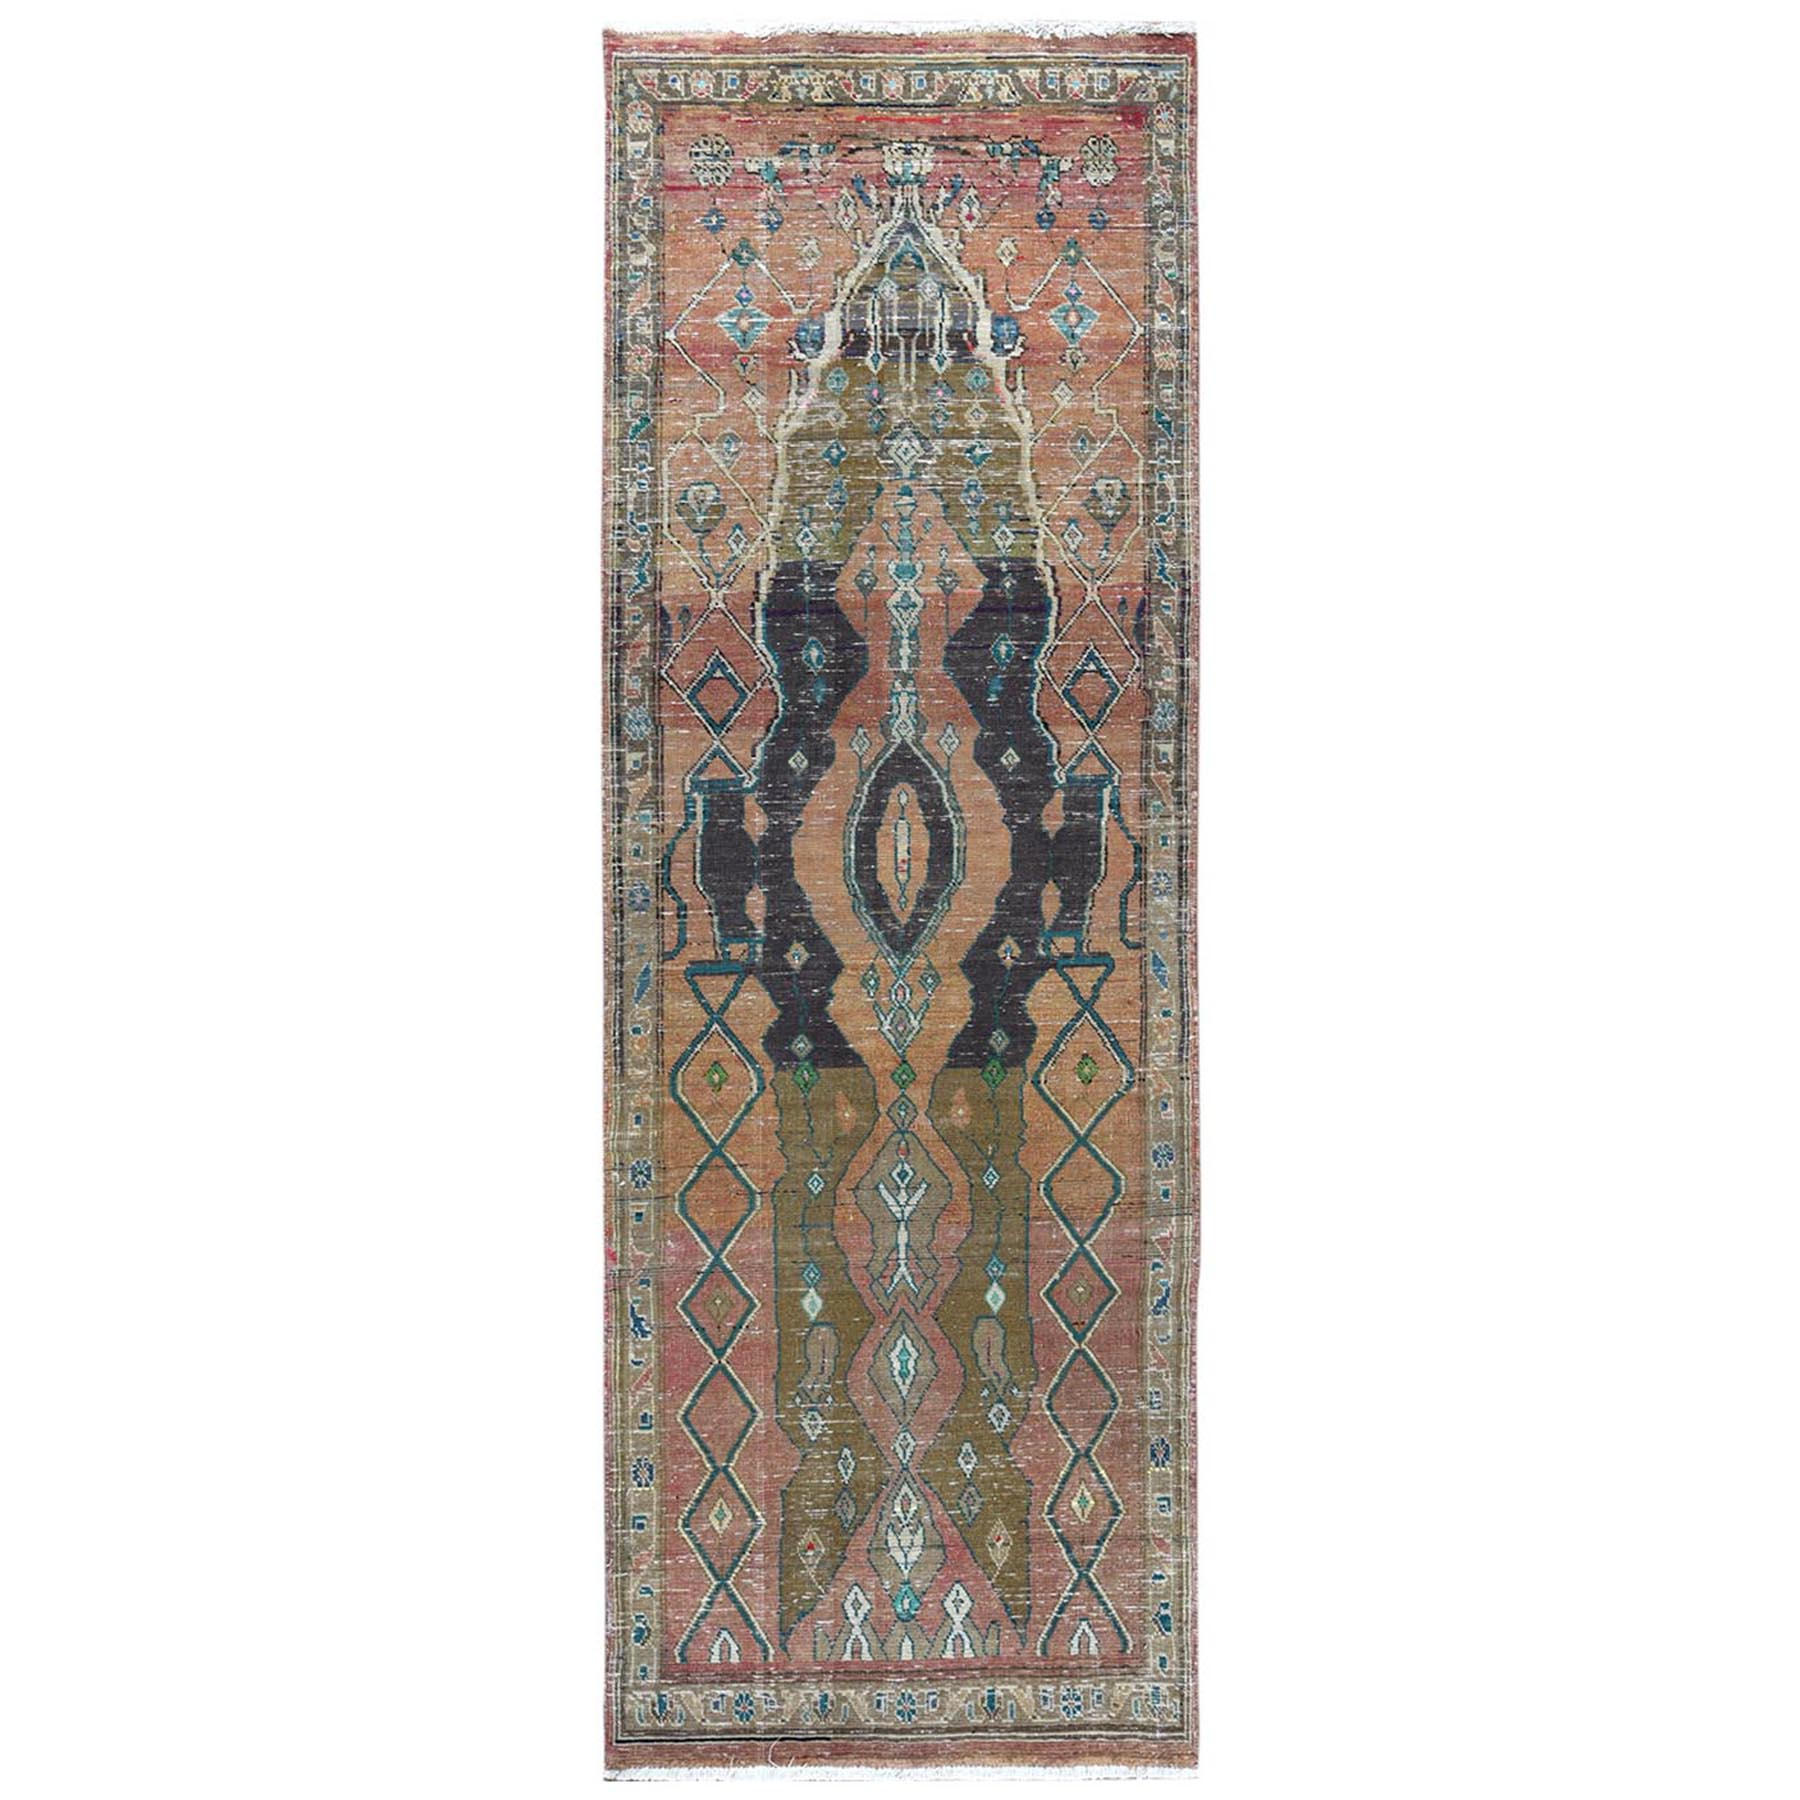 Fetneh Collection And Vintage Overdyed Collection Hand Knotted Orange Rug No: 1122008